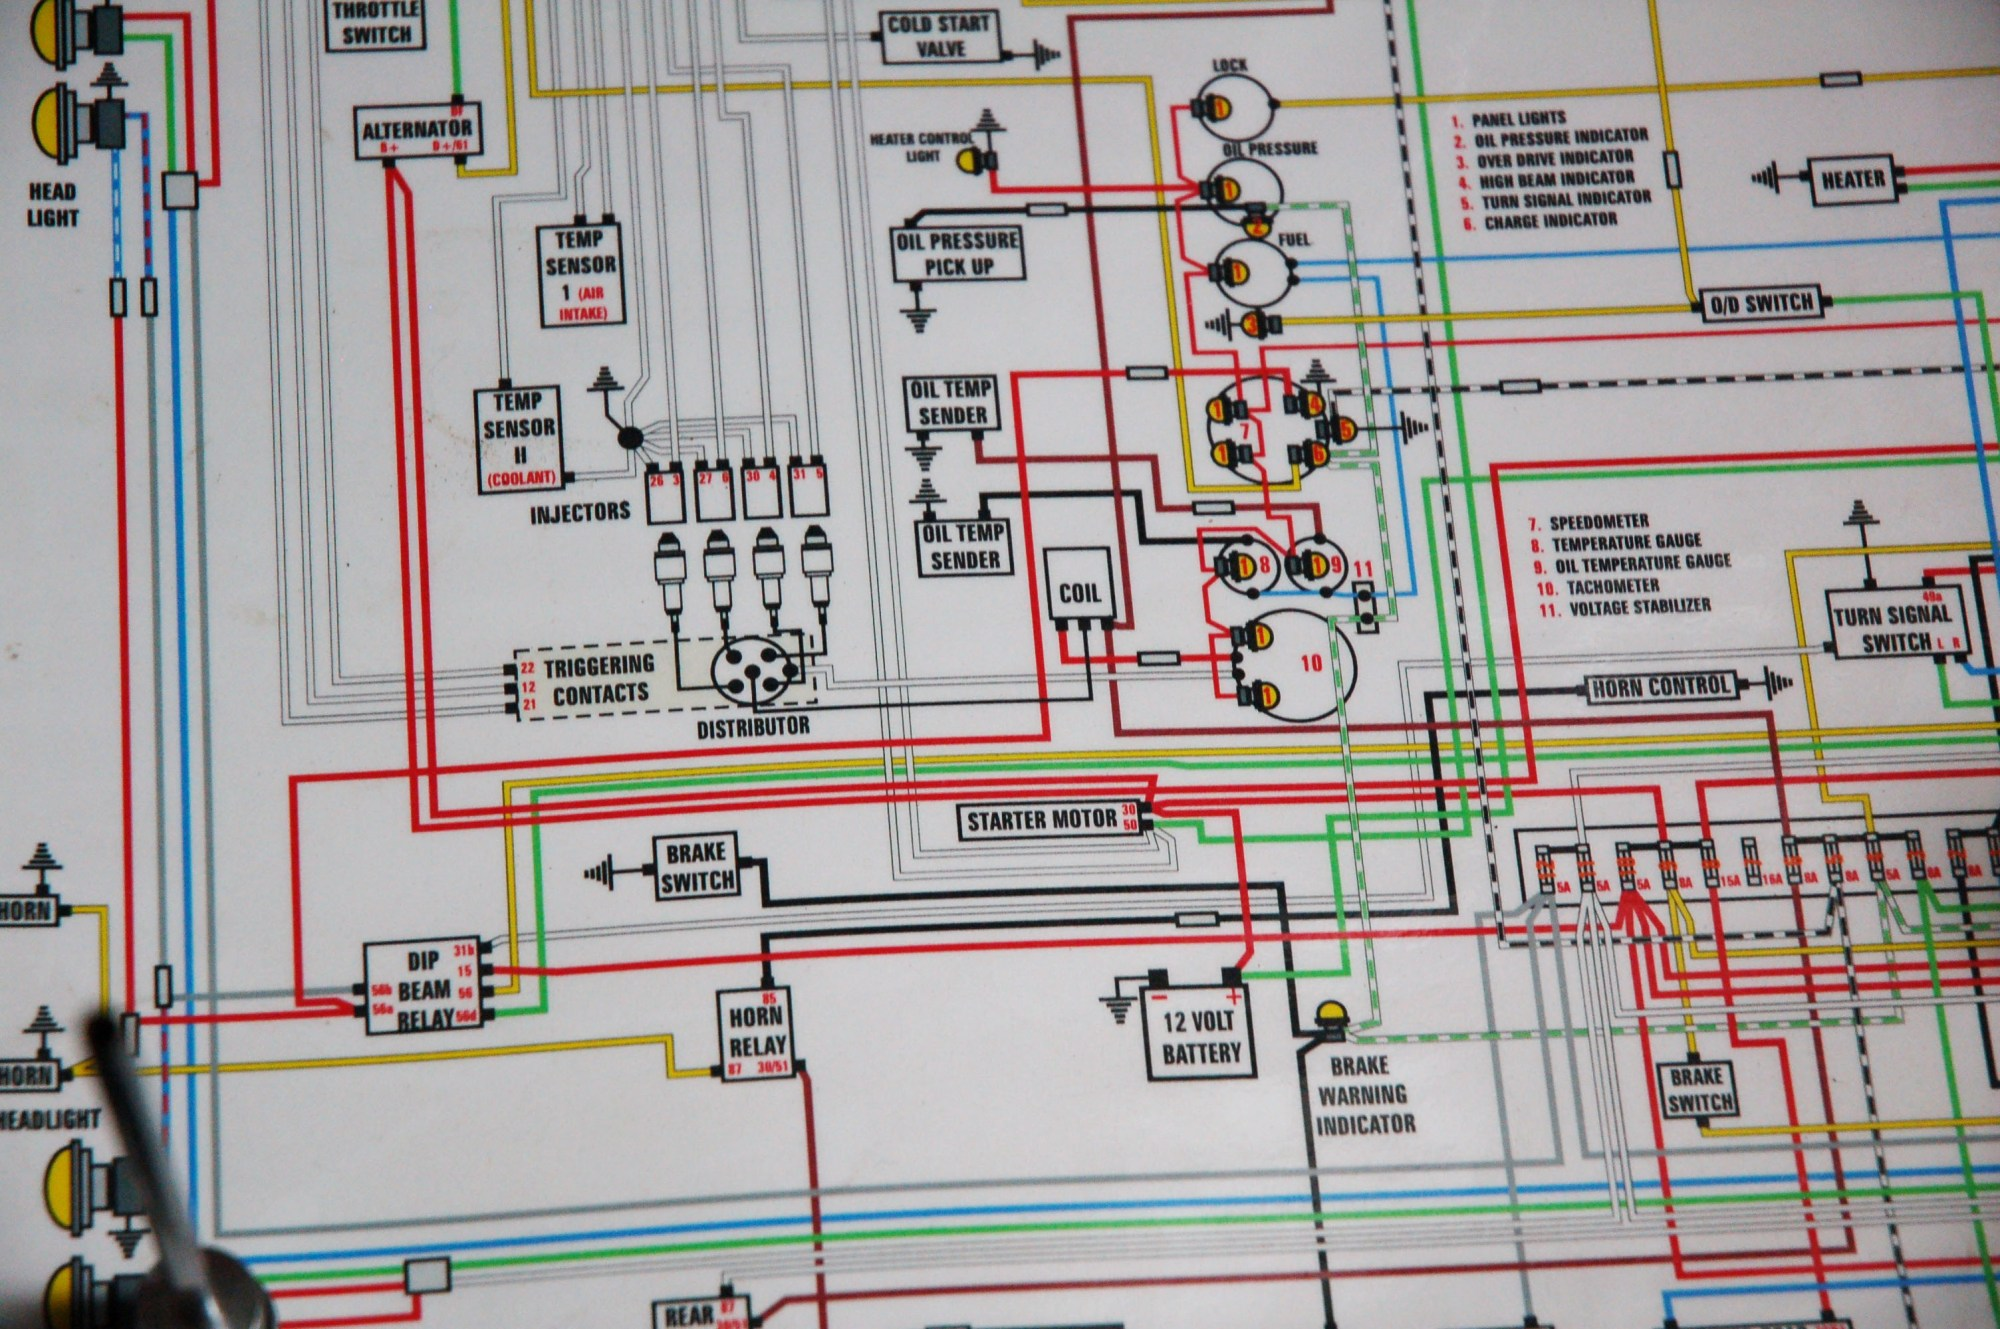 hight resolution of painless wiring diagram 2 wire wiring diagram pagepainless wiring harness instructions wiring diagram data val painless